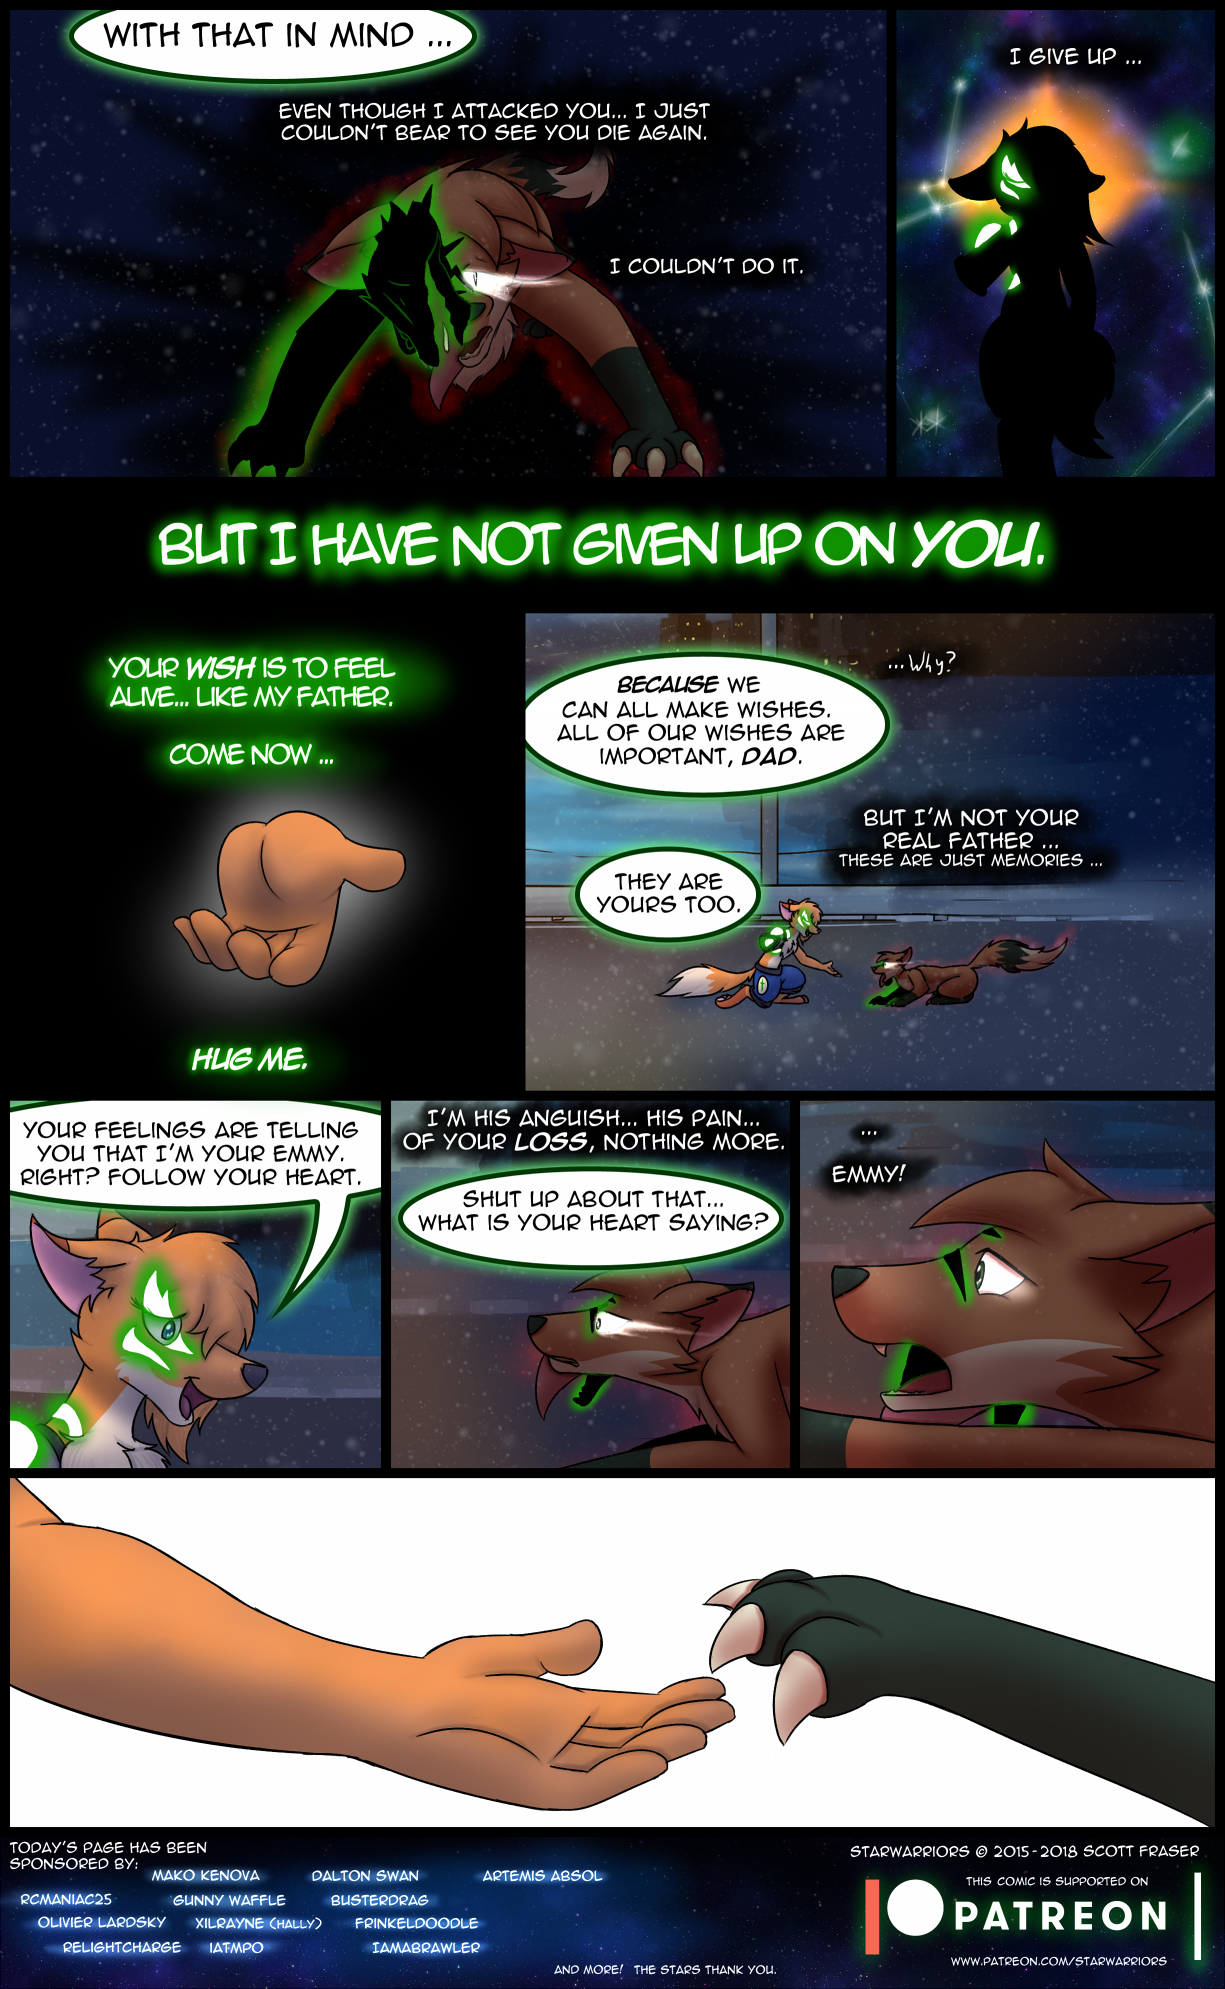 Ch3 Page 55 – What is YOUR Wish?